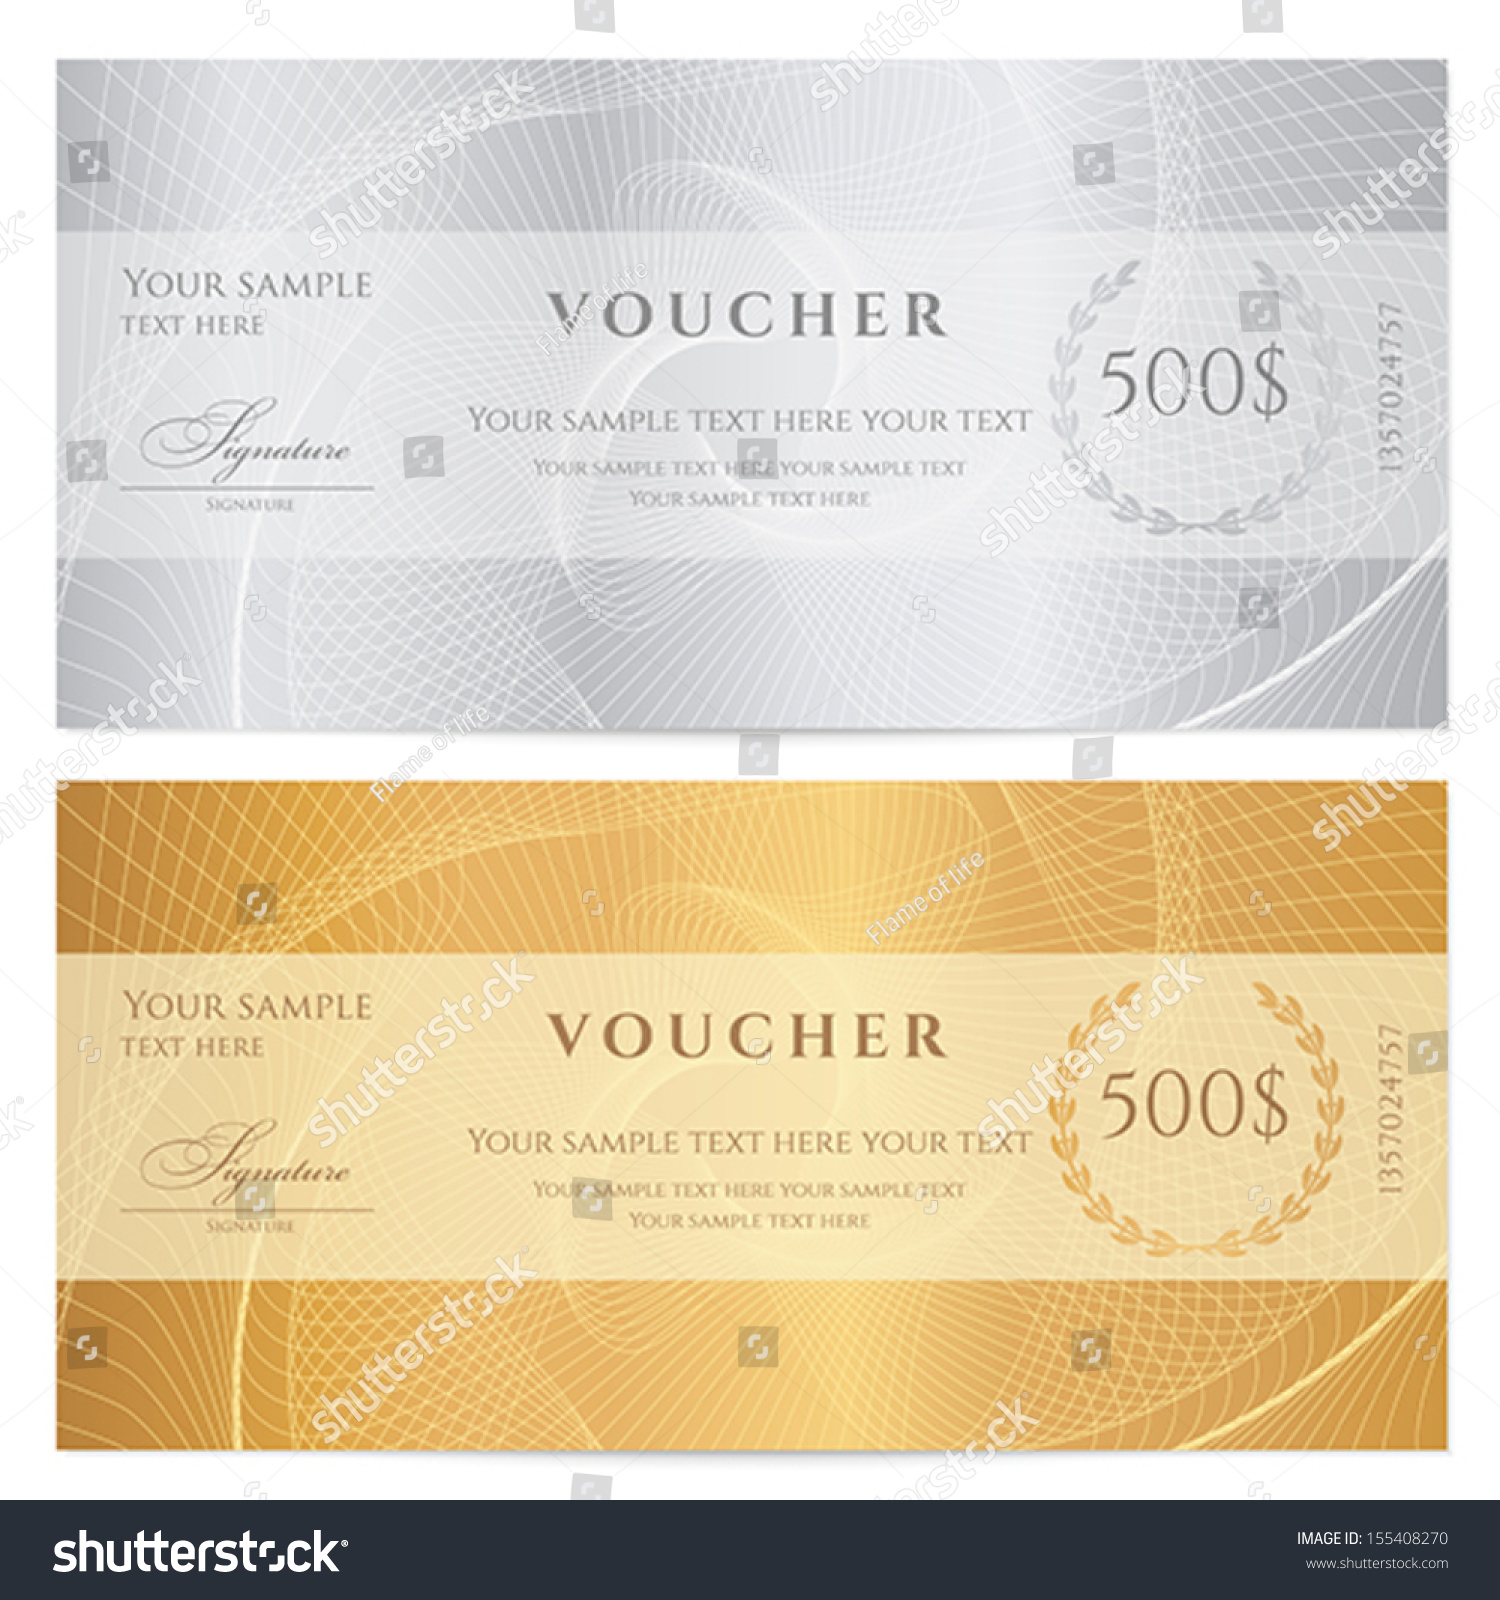 voucher gift certificate coupon ticket template stock vector voucher gift certificate coupon ticket template guilloche pattern watermark spirograph